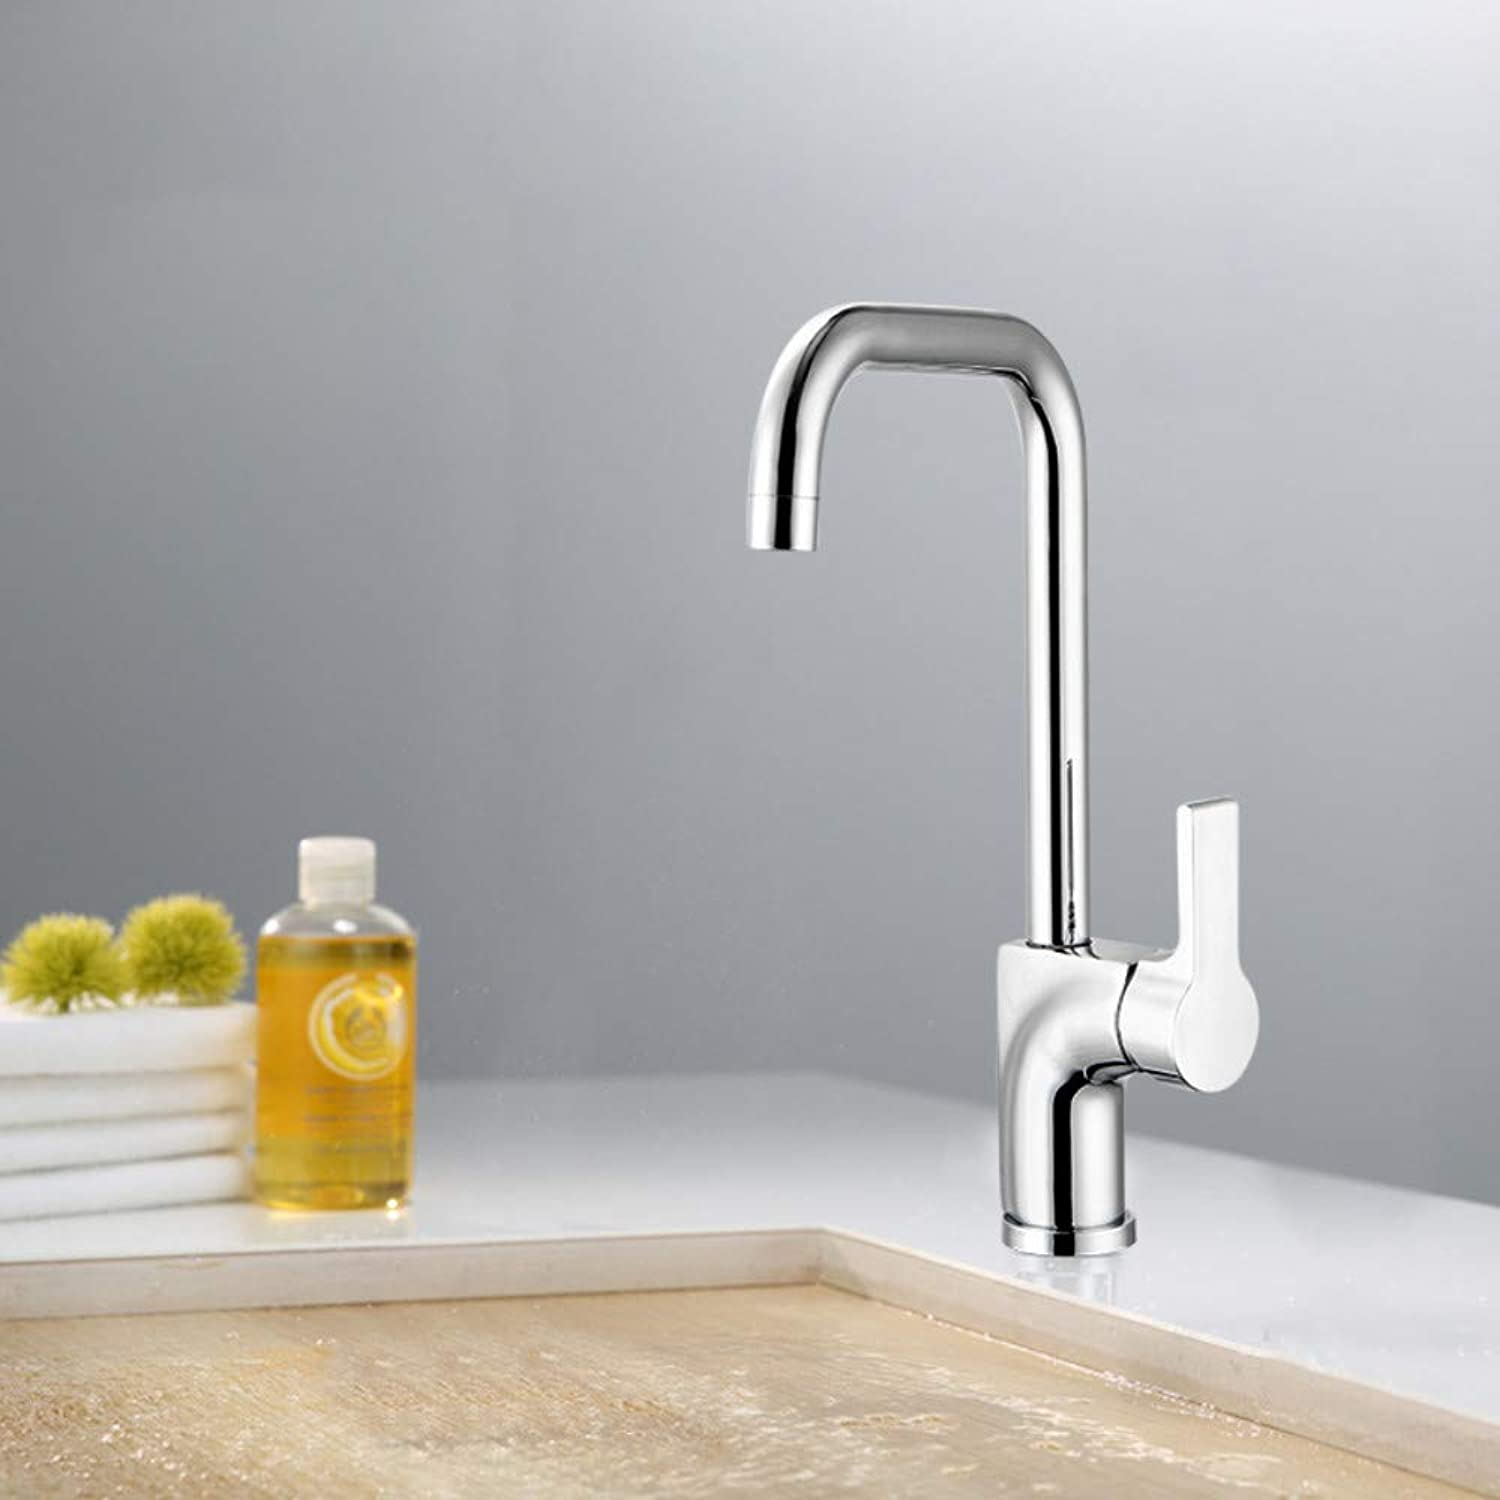 Copper Hot and Cold Water Faucet Kitchen Sink Large Curved Pipe Faucet 360 Degree redation